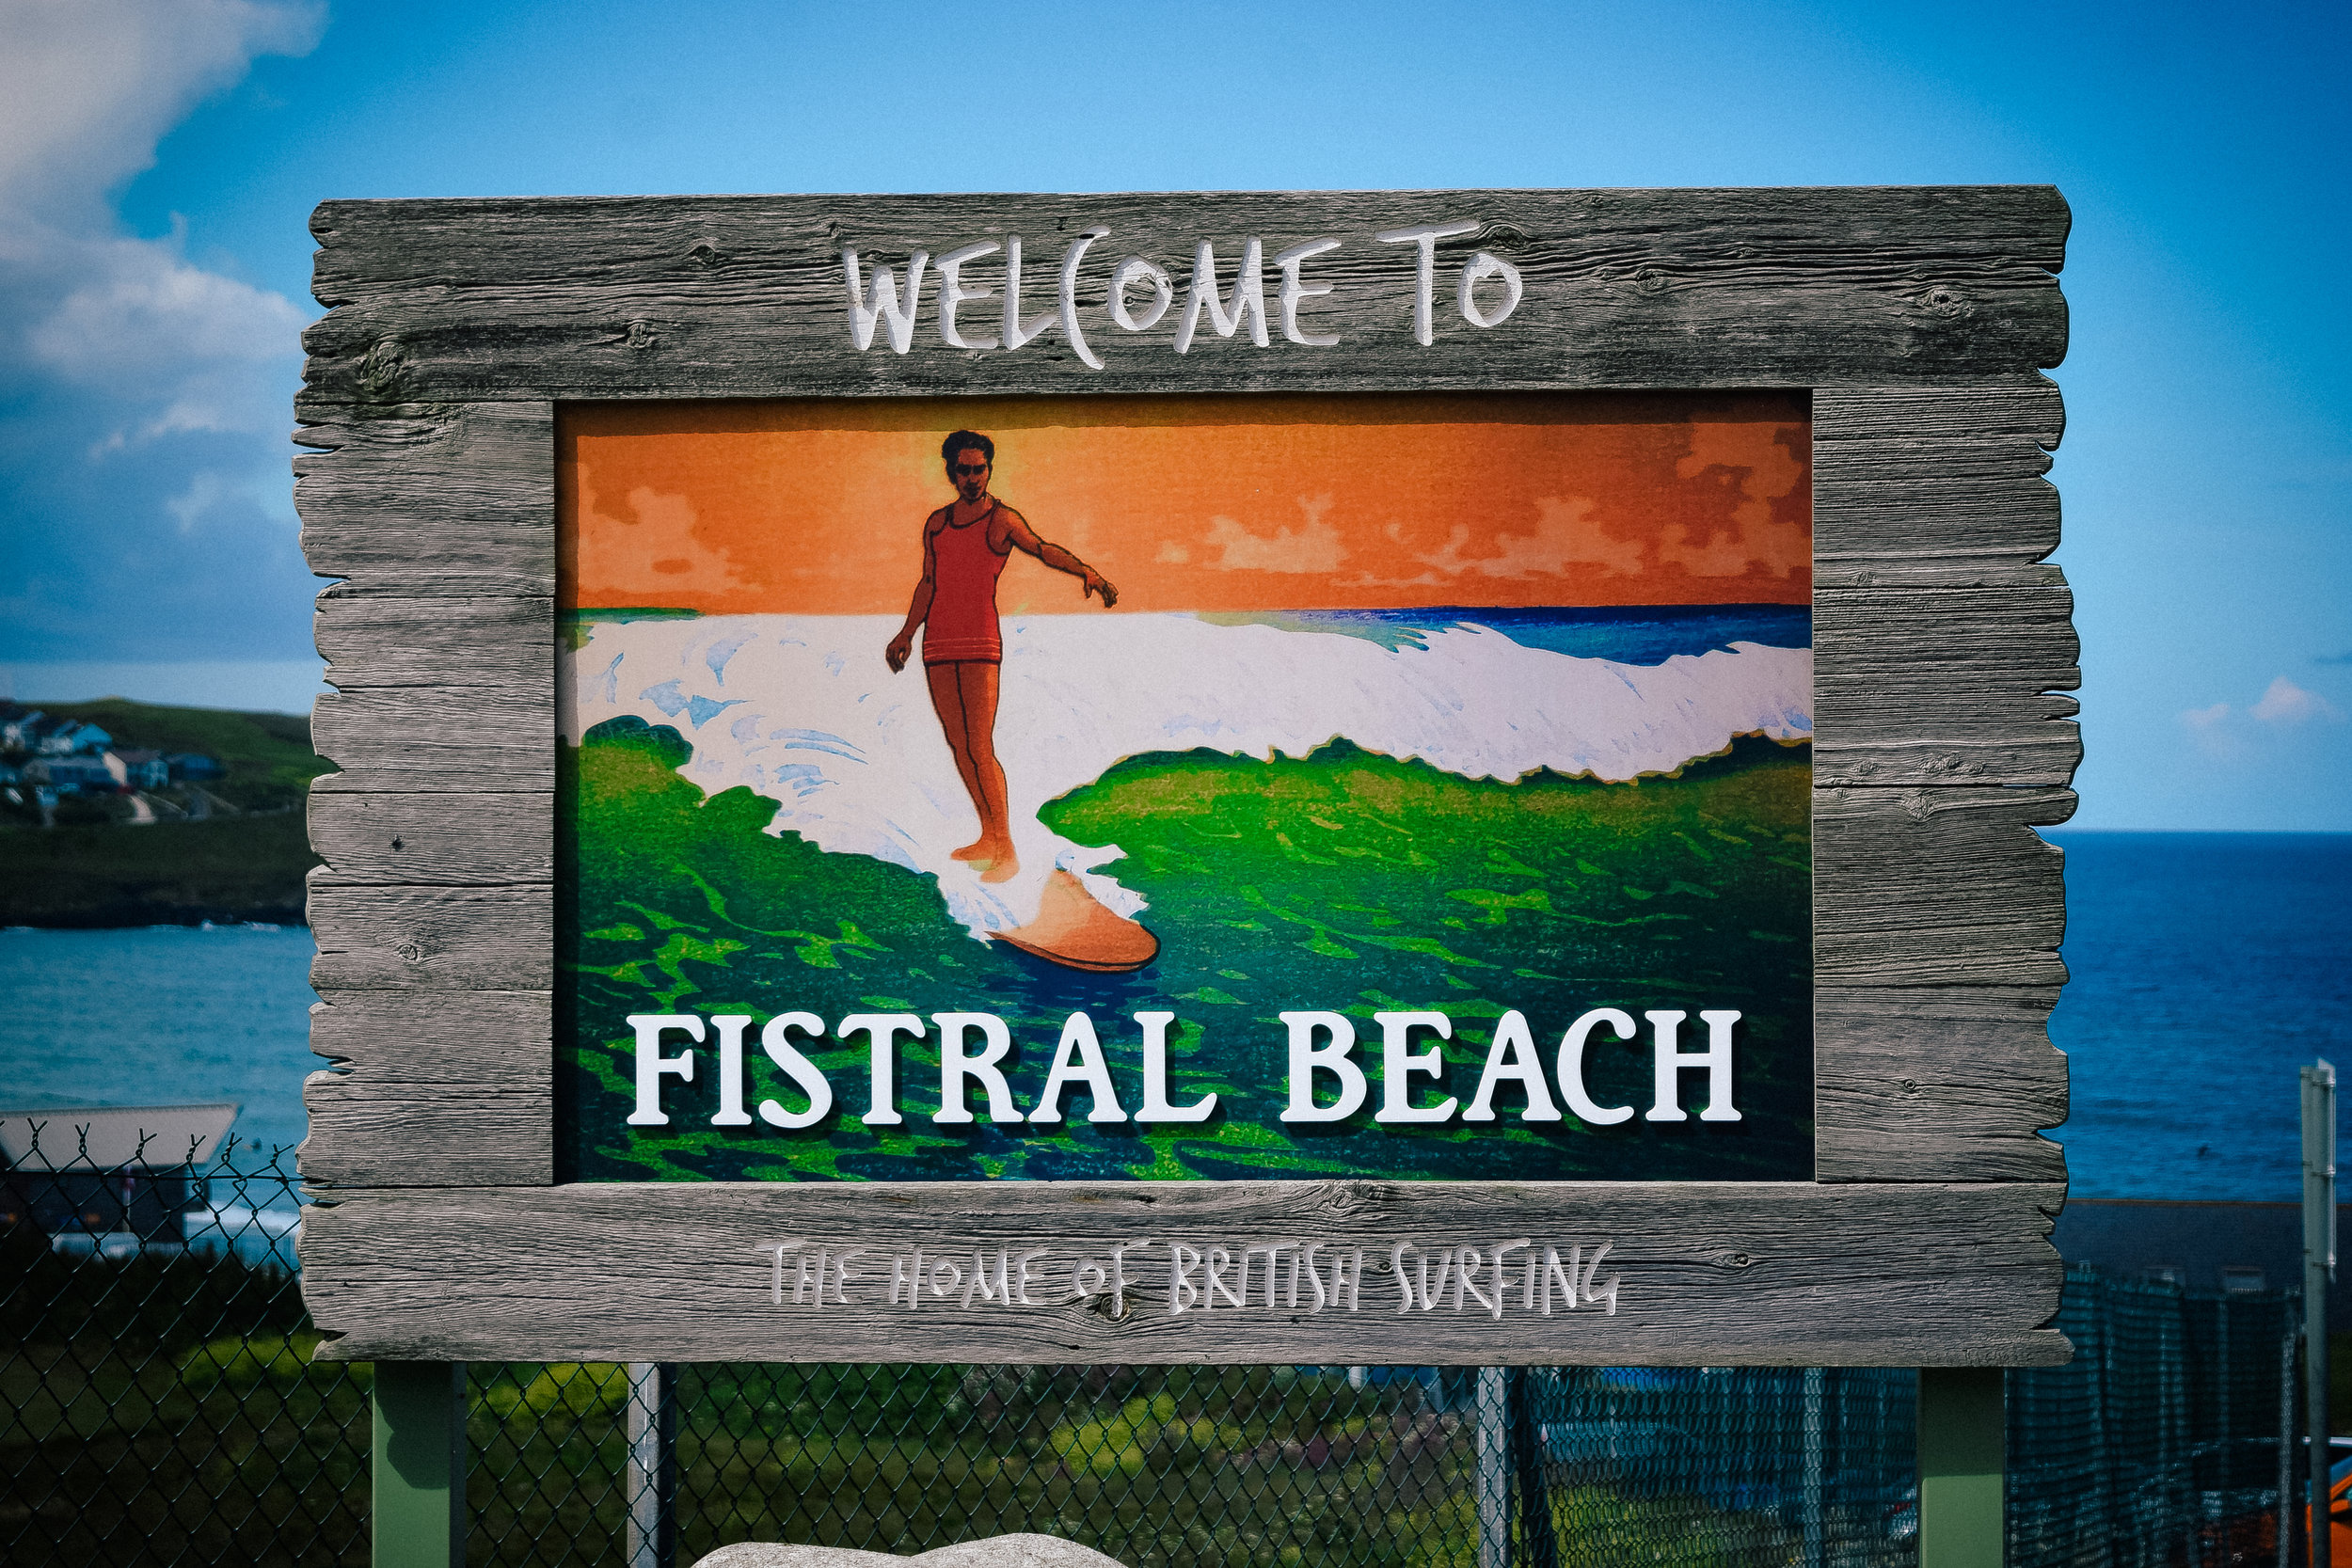 fistral beach sign in newquay